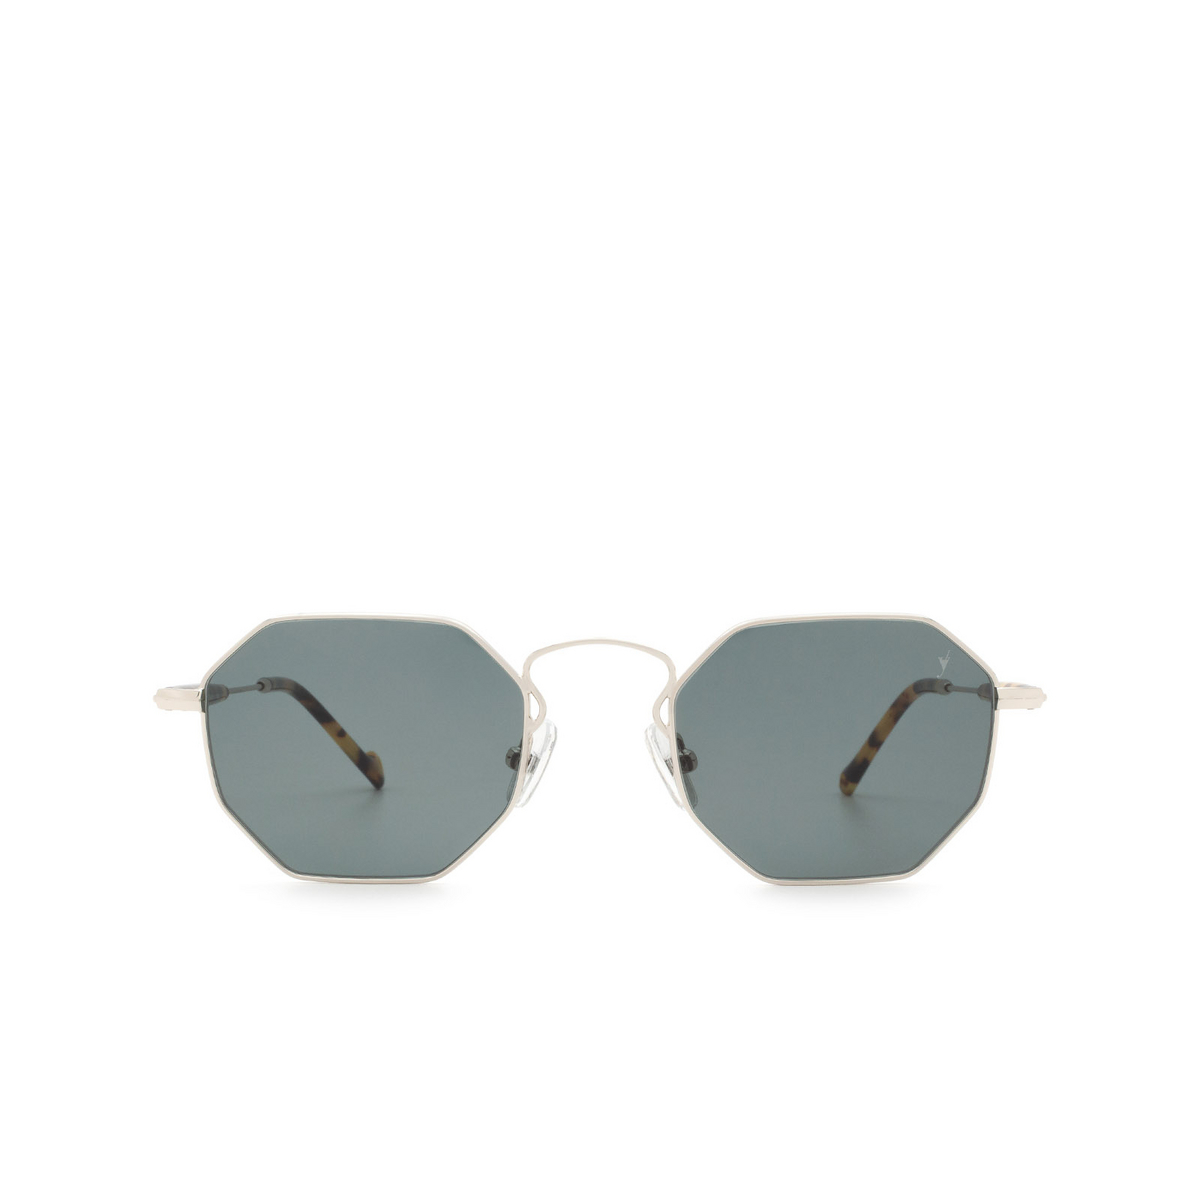 Eyepetizer® Irregular Sunglasses: Pompidou color Silver C.1-F-40 - front view.